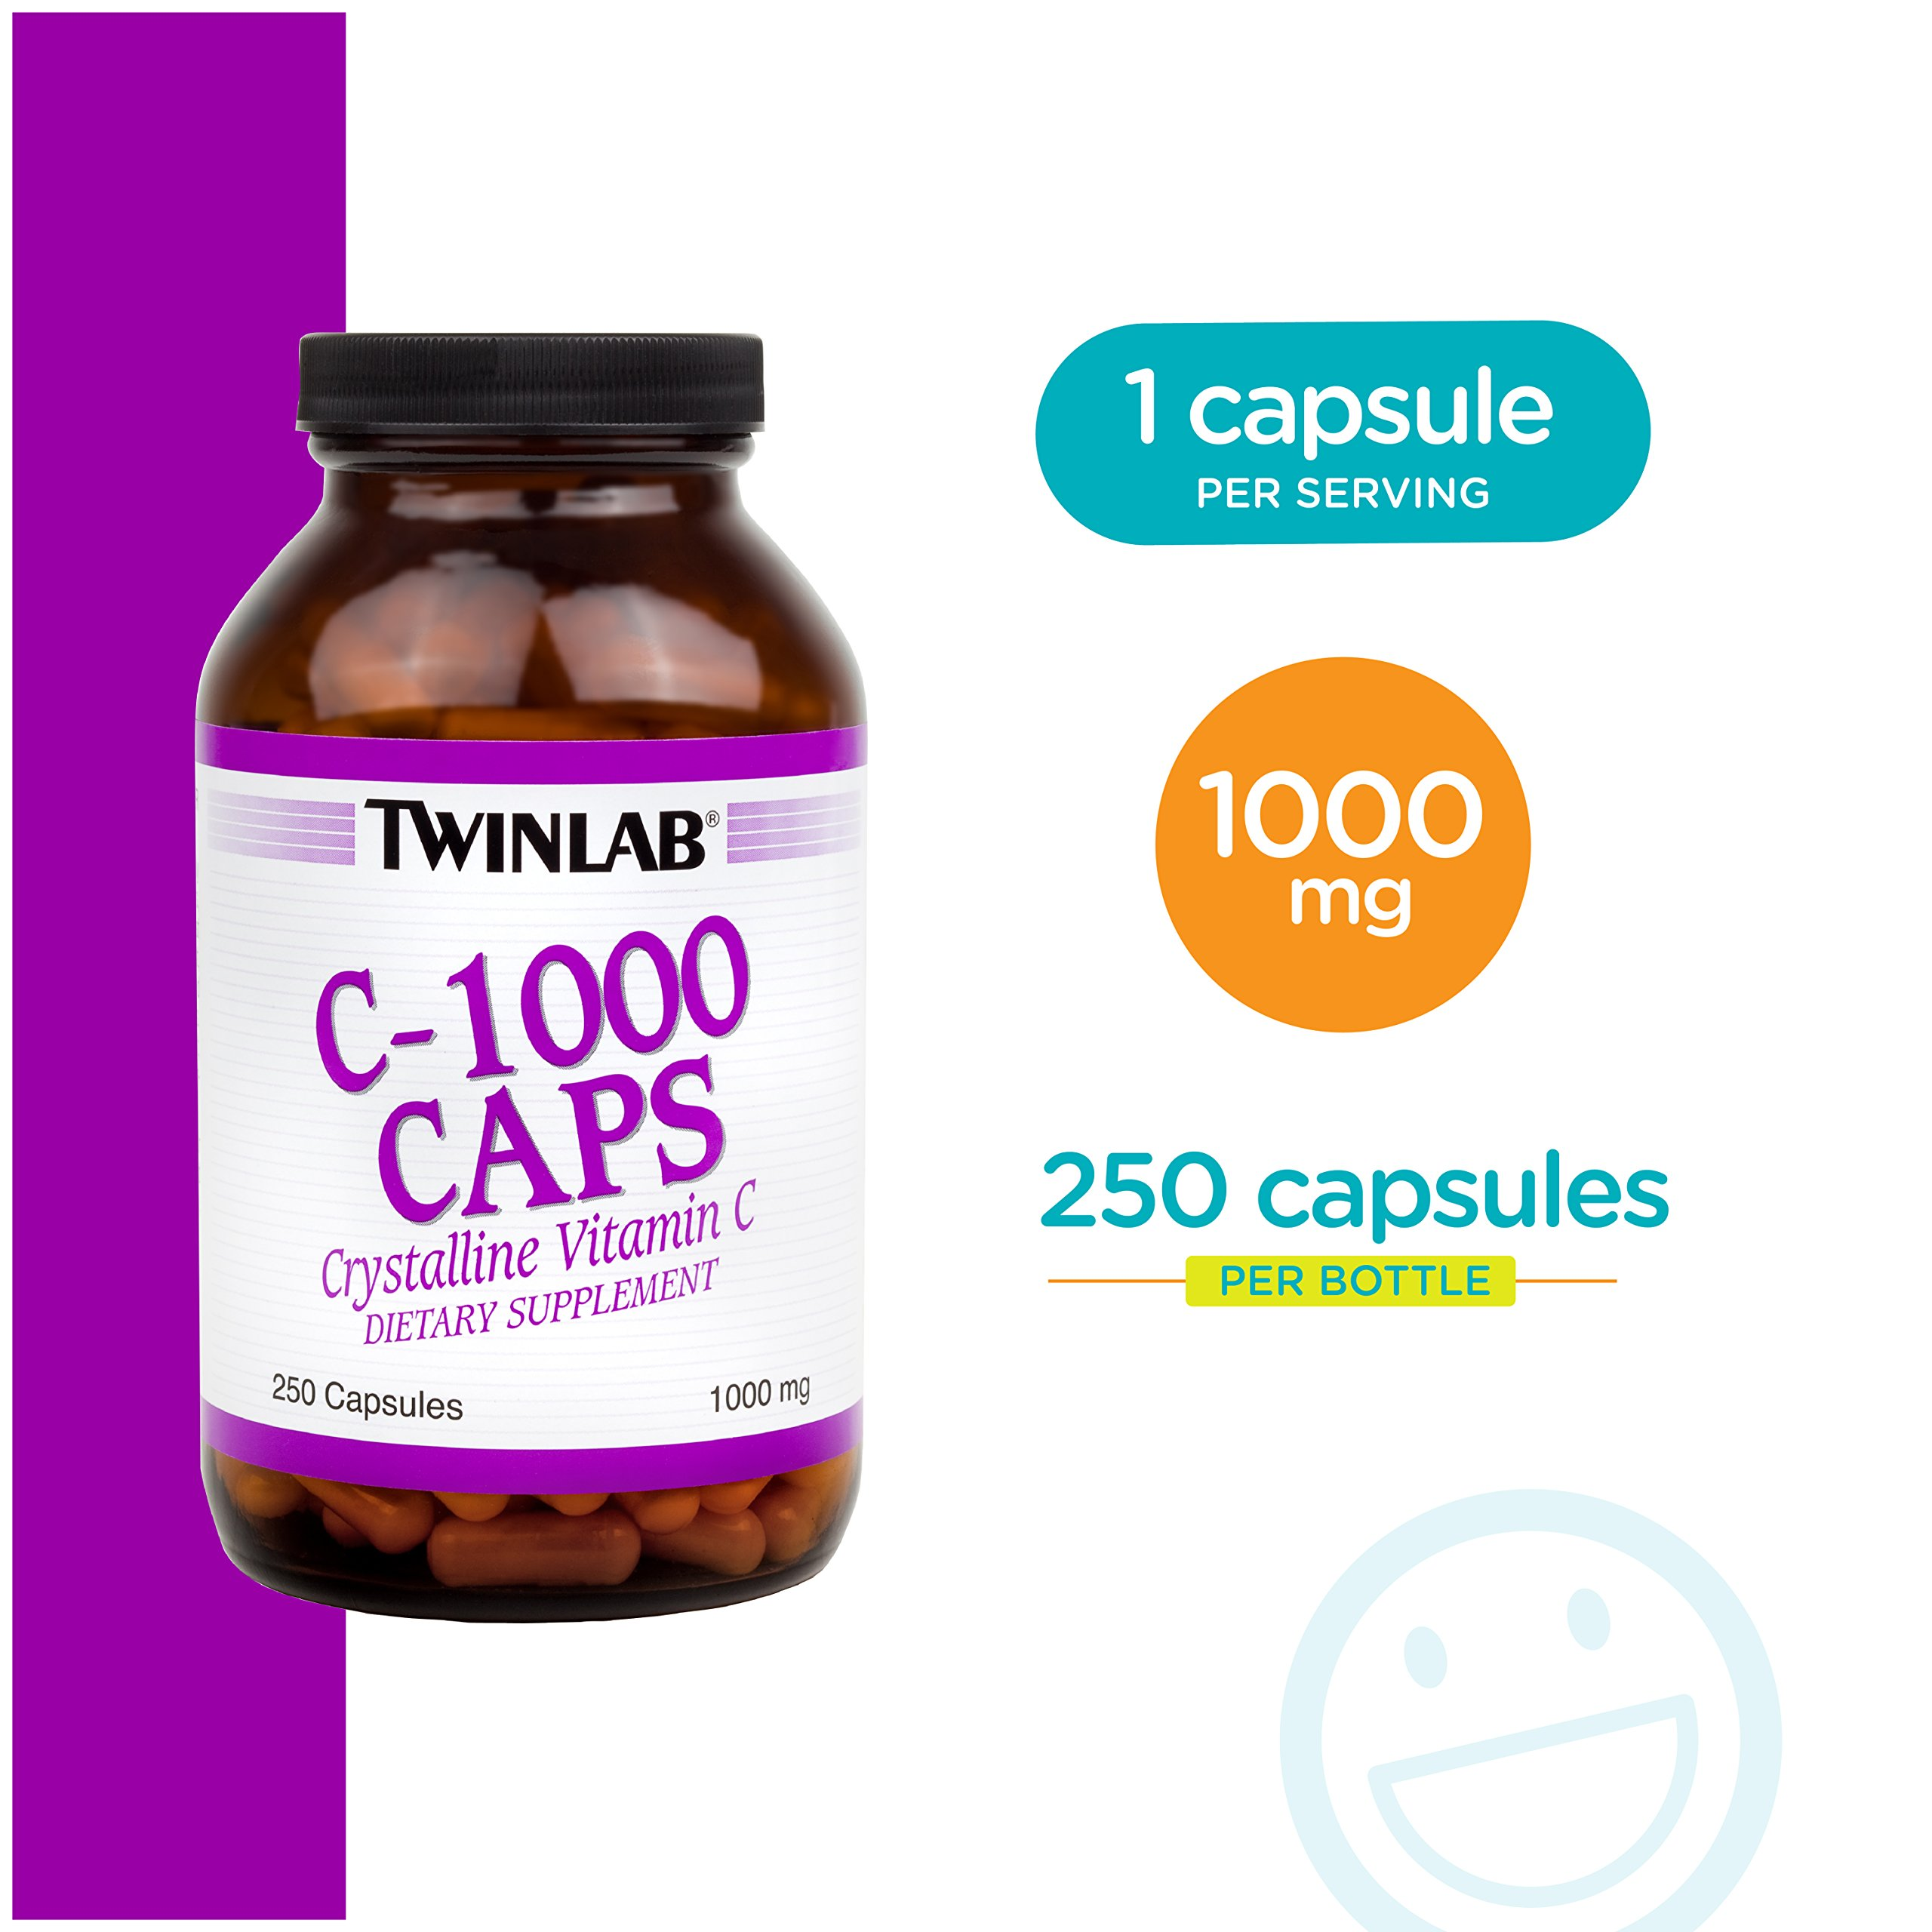 Twinlab C-1000 Caps, 1000mg, 250 Capsules (Pack of 2) by Twinlab (Image #6)